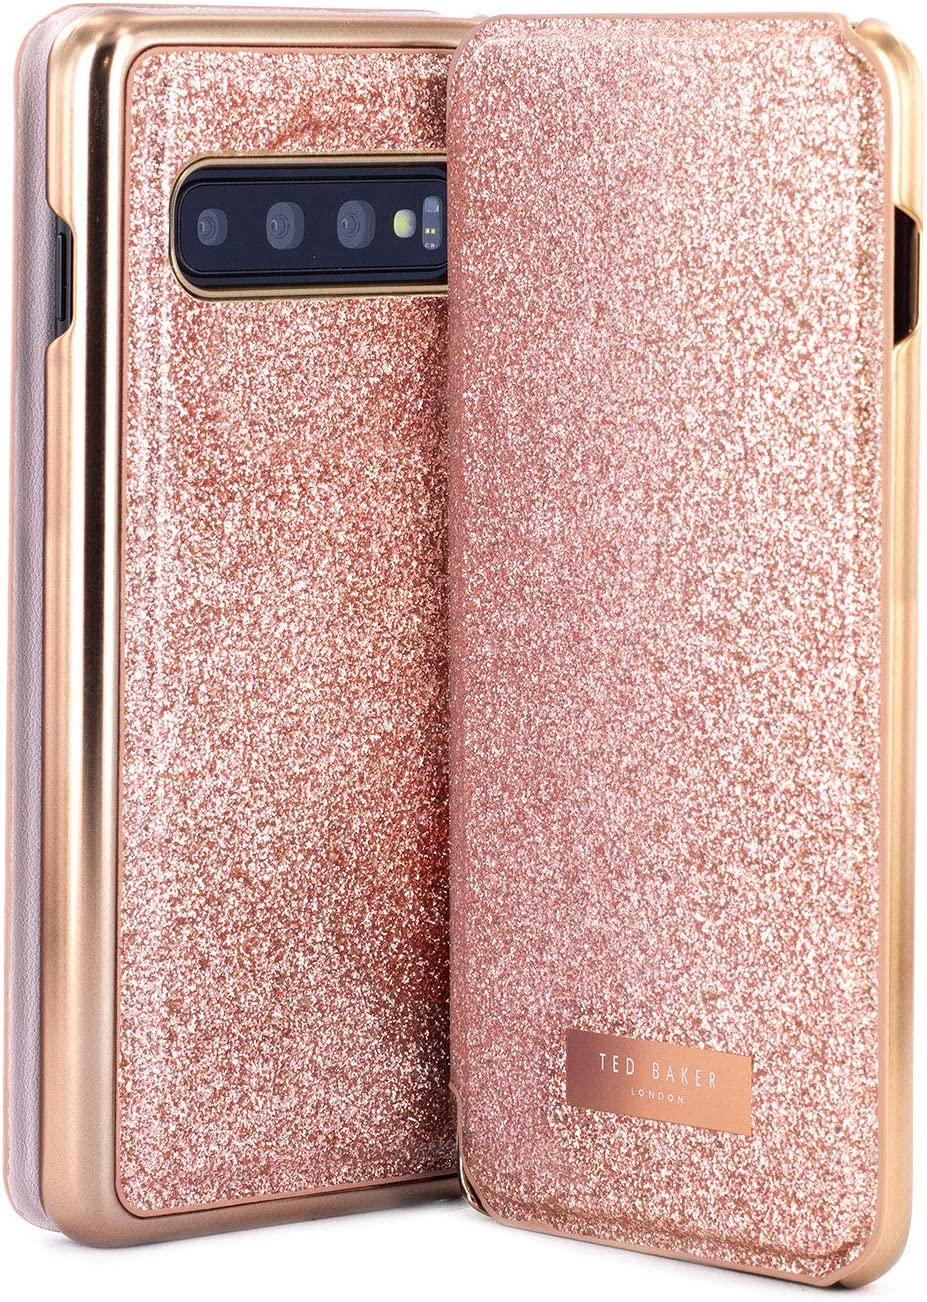 Ted Baker Fashion GLITSYY Mirror Folio Case for Samsung Galaxy S10, Protective Cover Galaxy S10 for Professional Women/Girls: Amazon.es: Electrónica